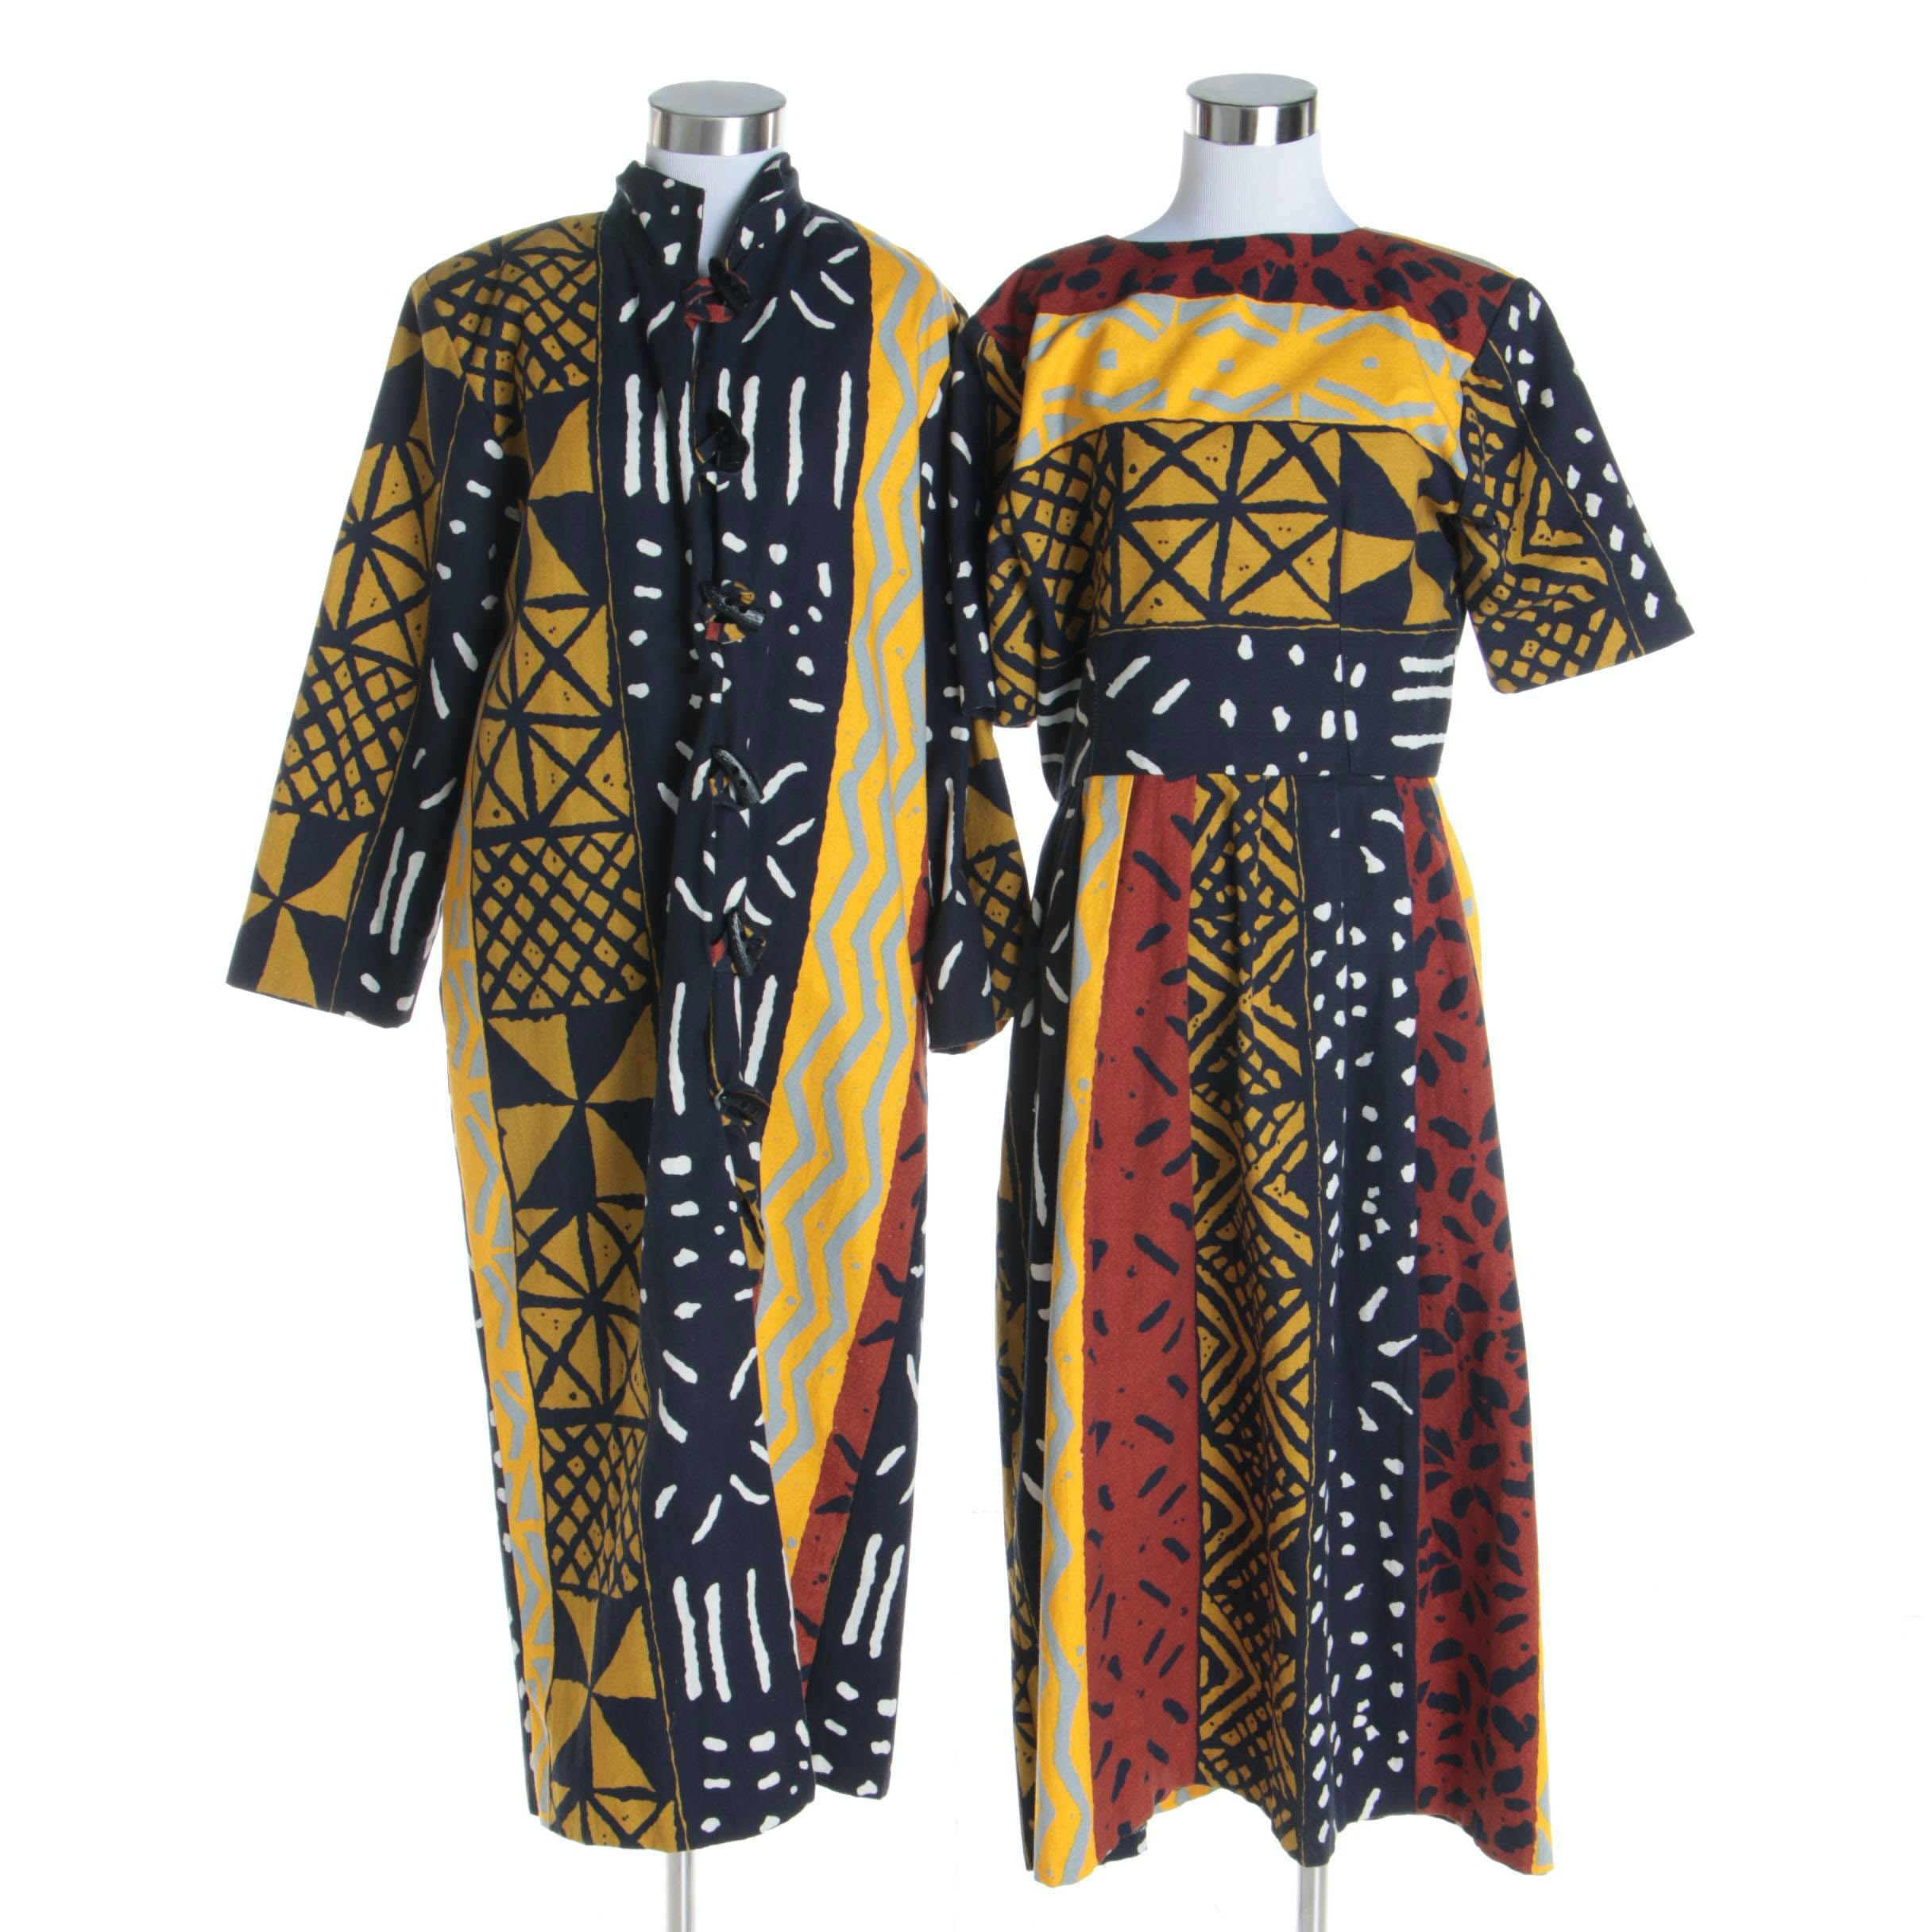 Women's Vintage Handmade African Mudcloth-Style Ensemble